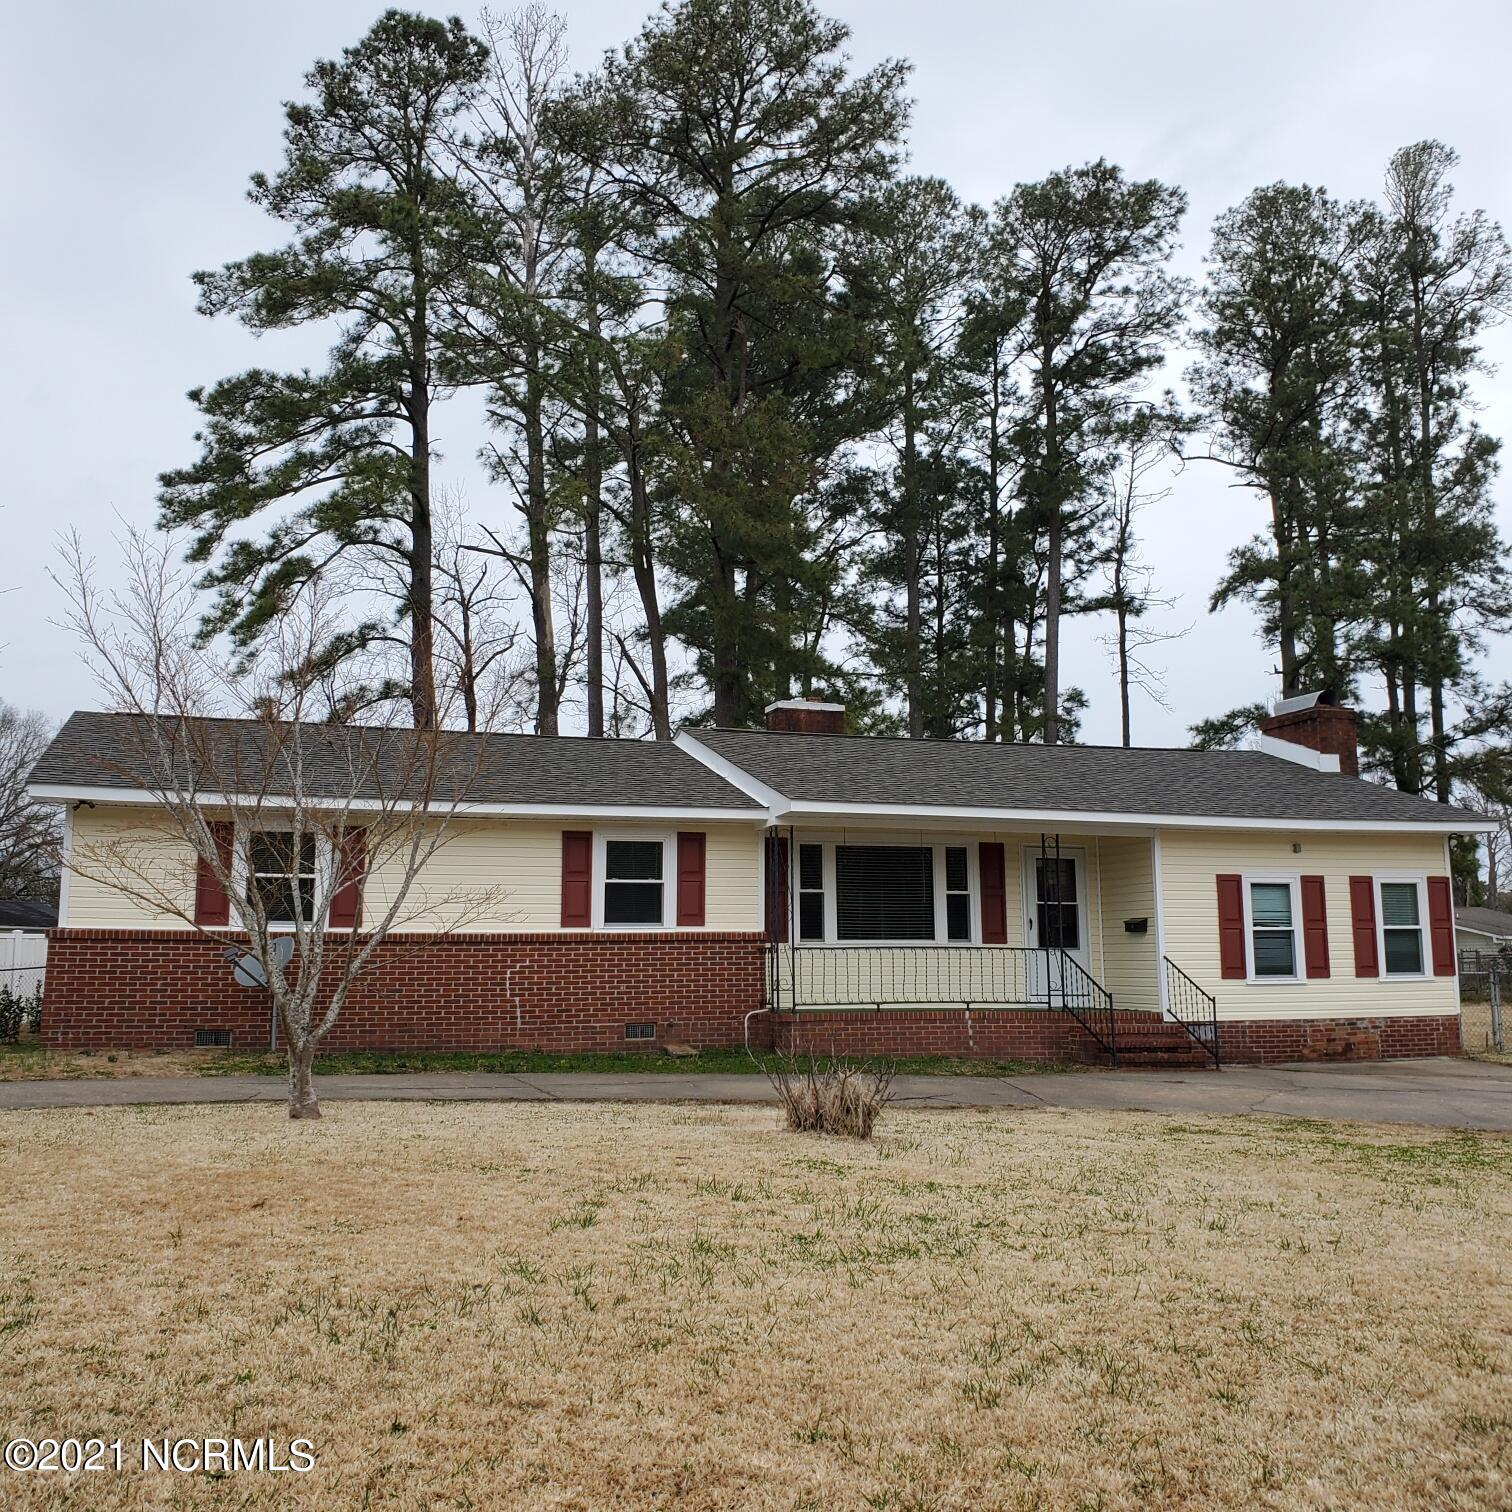 Charming home, includes new windows, roof, siding. Sunroom, 12x40. Original wood floors everywhere except kitchen, baths (tile) family room (new carpet) utility room.Three bedrooms, family room, living room, dining room adjoins family kitchen with nook. Utility room w/wet sink.  Old Republic Home Warranty  included.